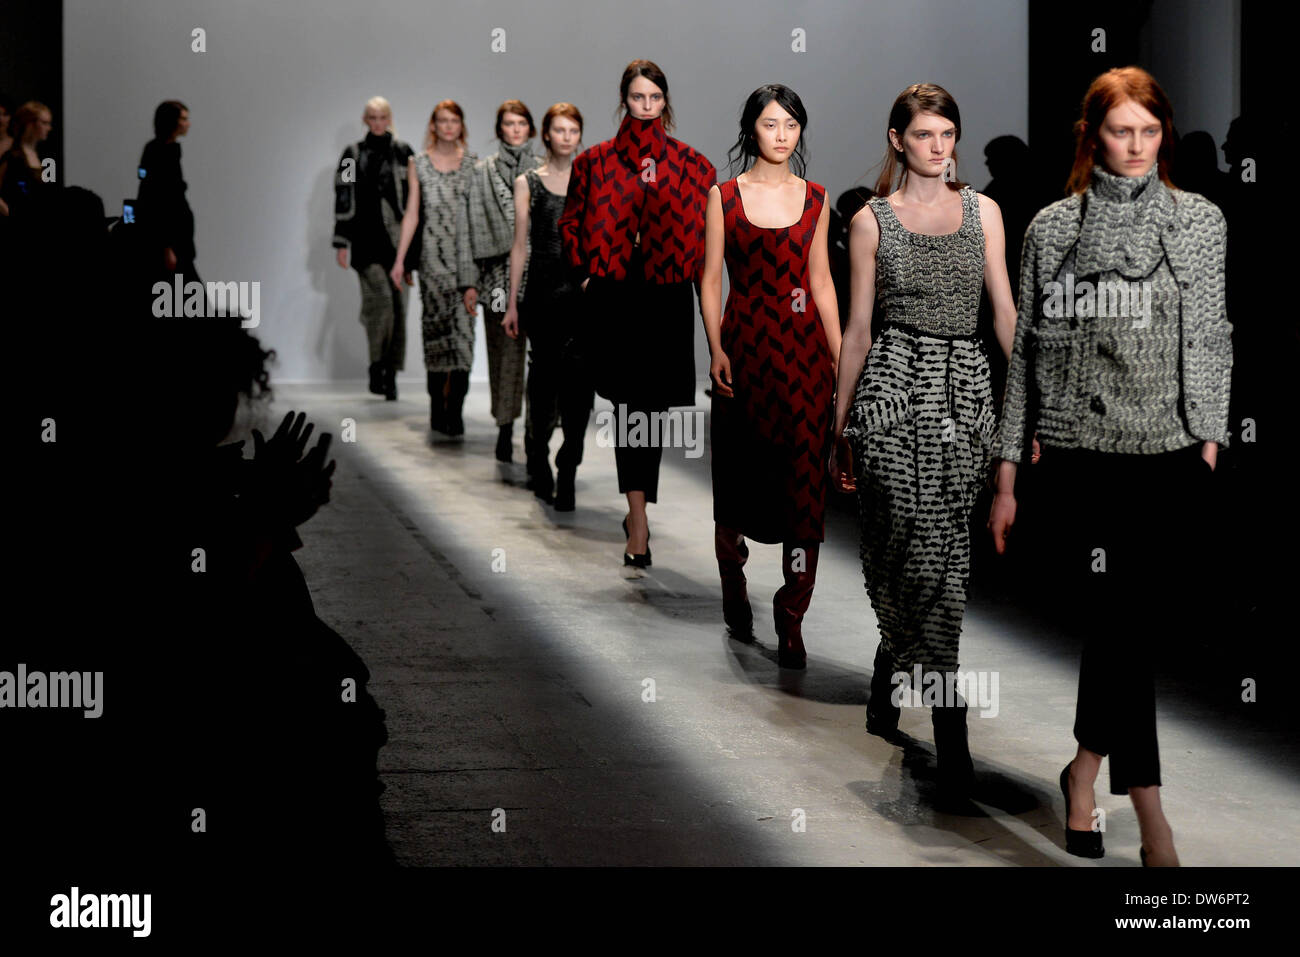 Paris, France. 1st Mar, 2014. Models present creations by Veronique Leroy during the Paris Fashion Week, Fall/Winter 2014-2015 in Paris, France, on March 1, 2014. Credit:  Chen Xiaowei/Xinhua/Alamy Live News - Stock Image